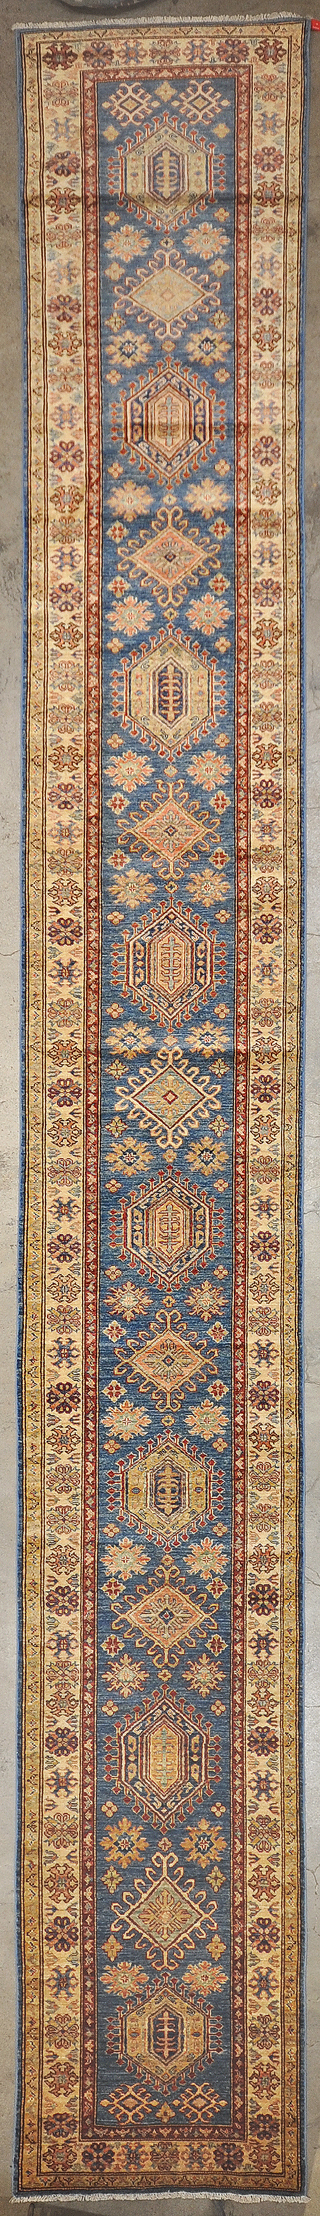 Caucasian Kazak rugs and more oriental carpet 34114-